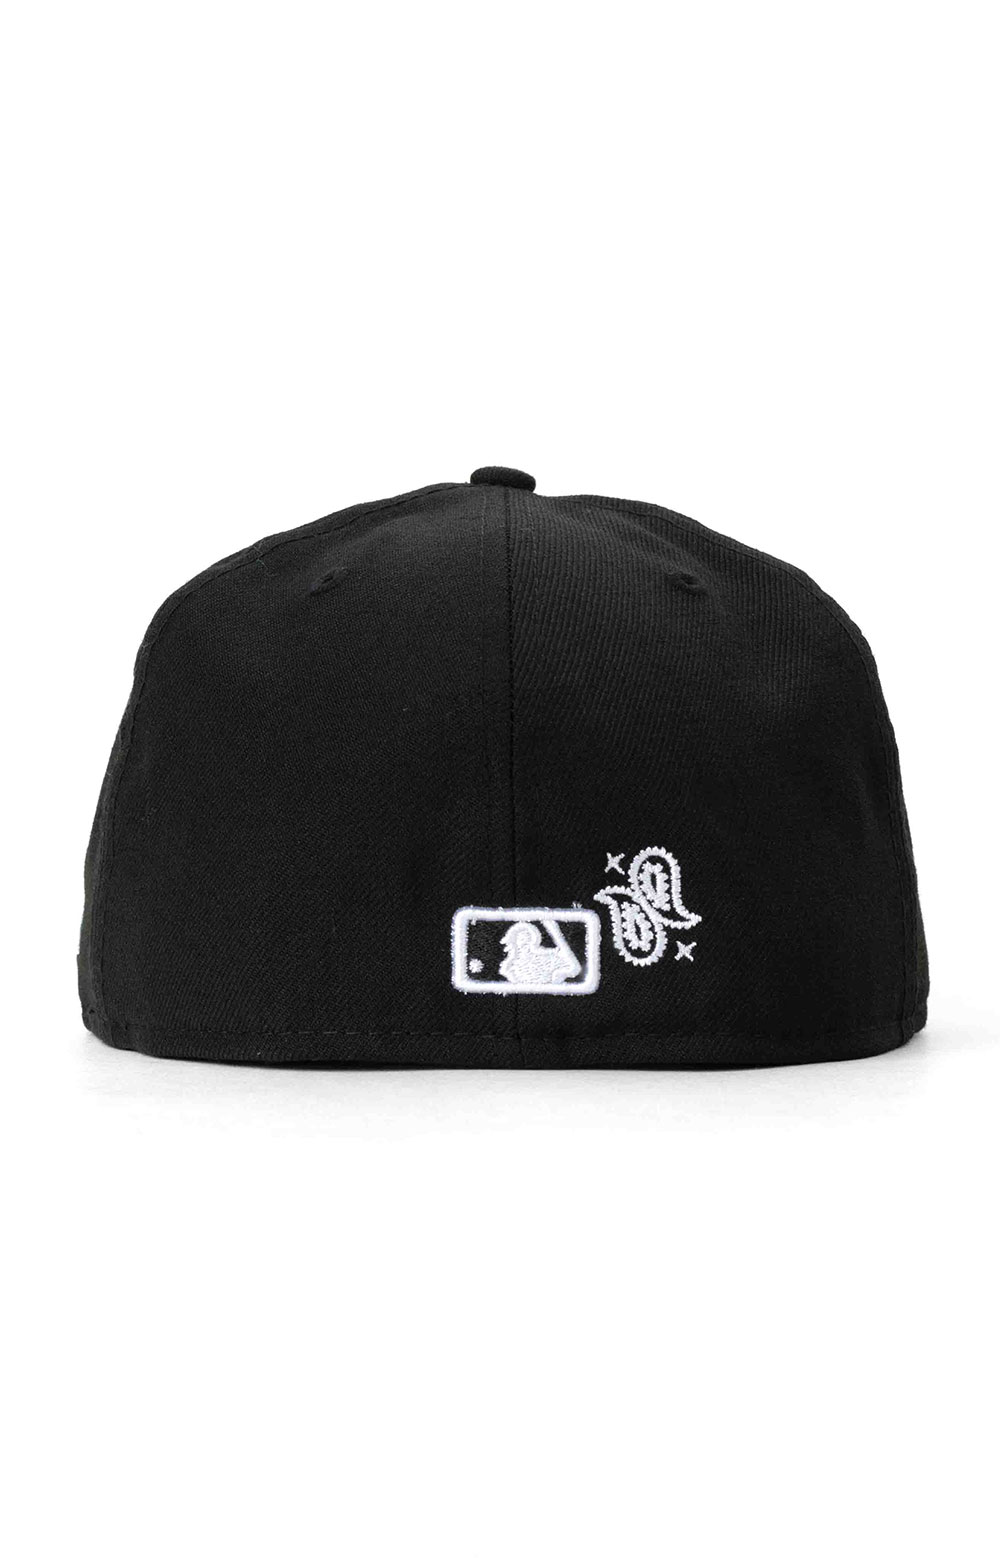 Atlanta Braves Paisley Elements 59Fifty Fitted Hat - Black  4